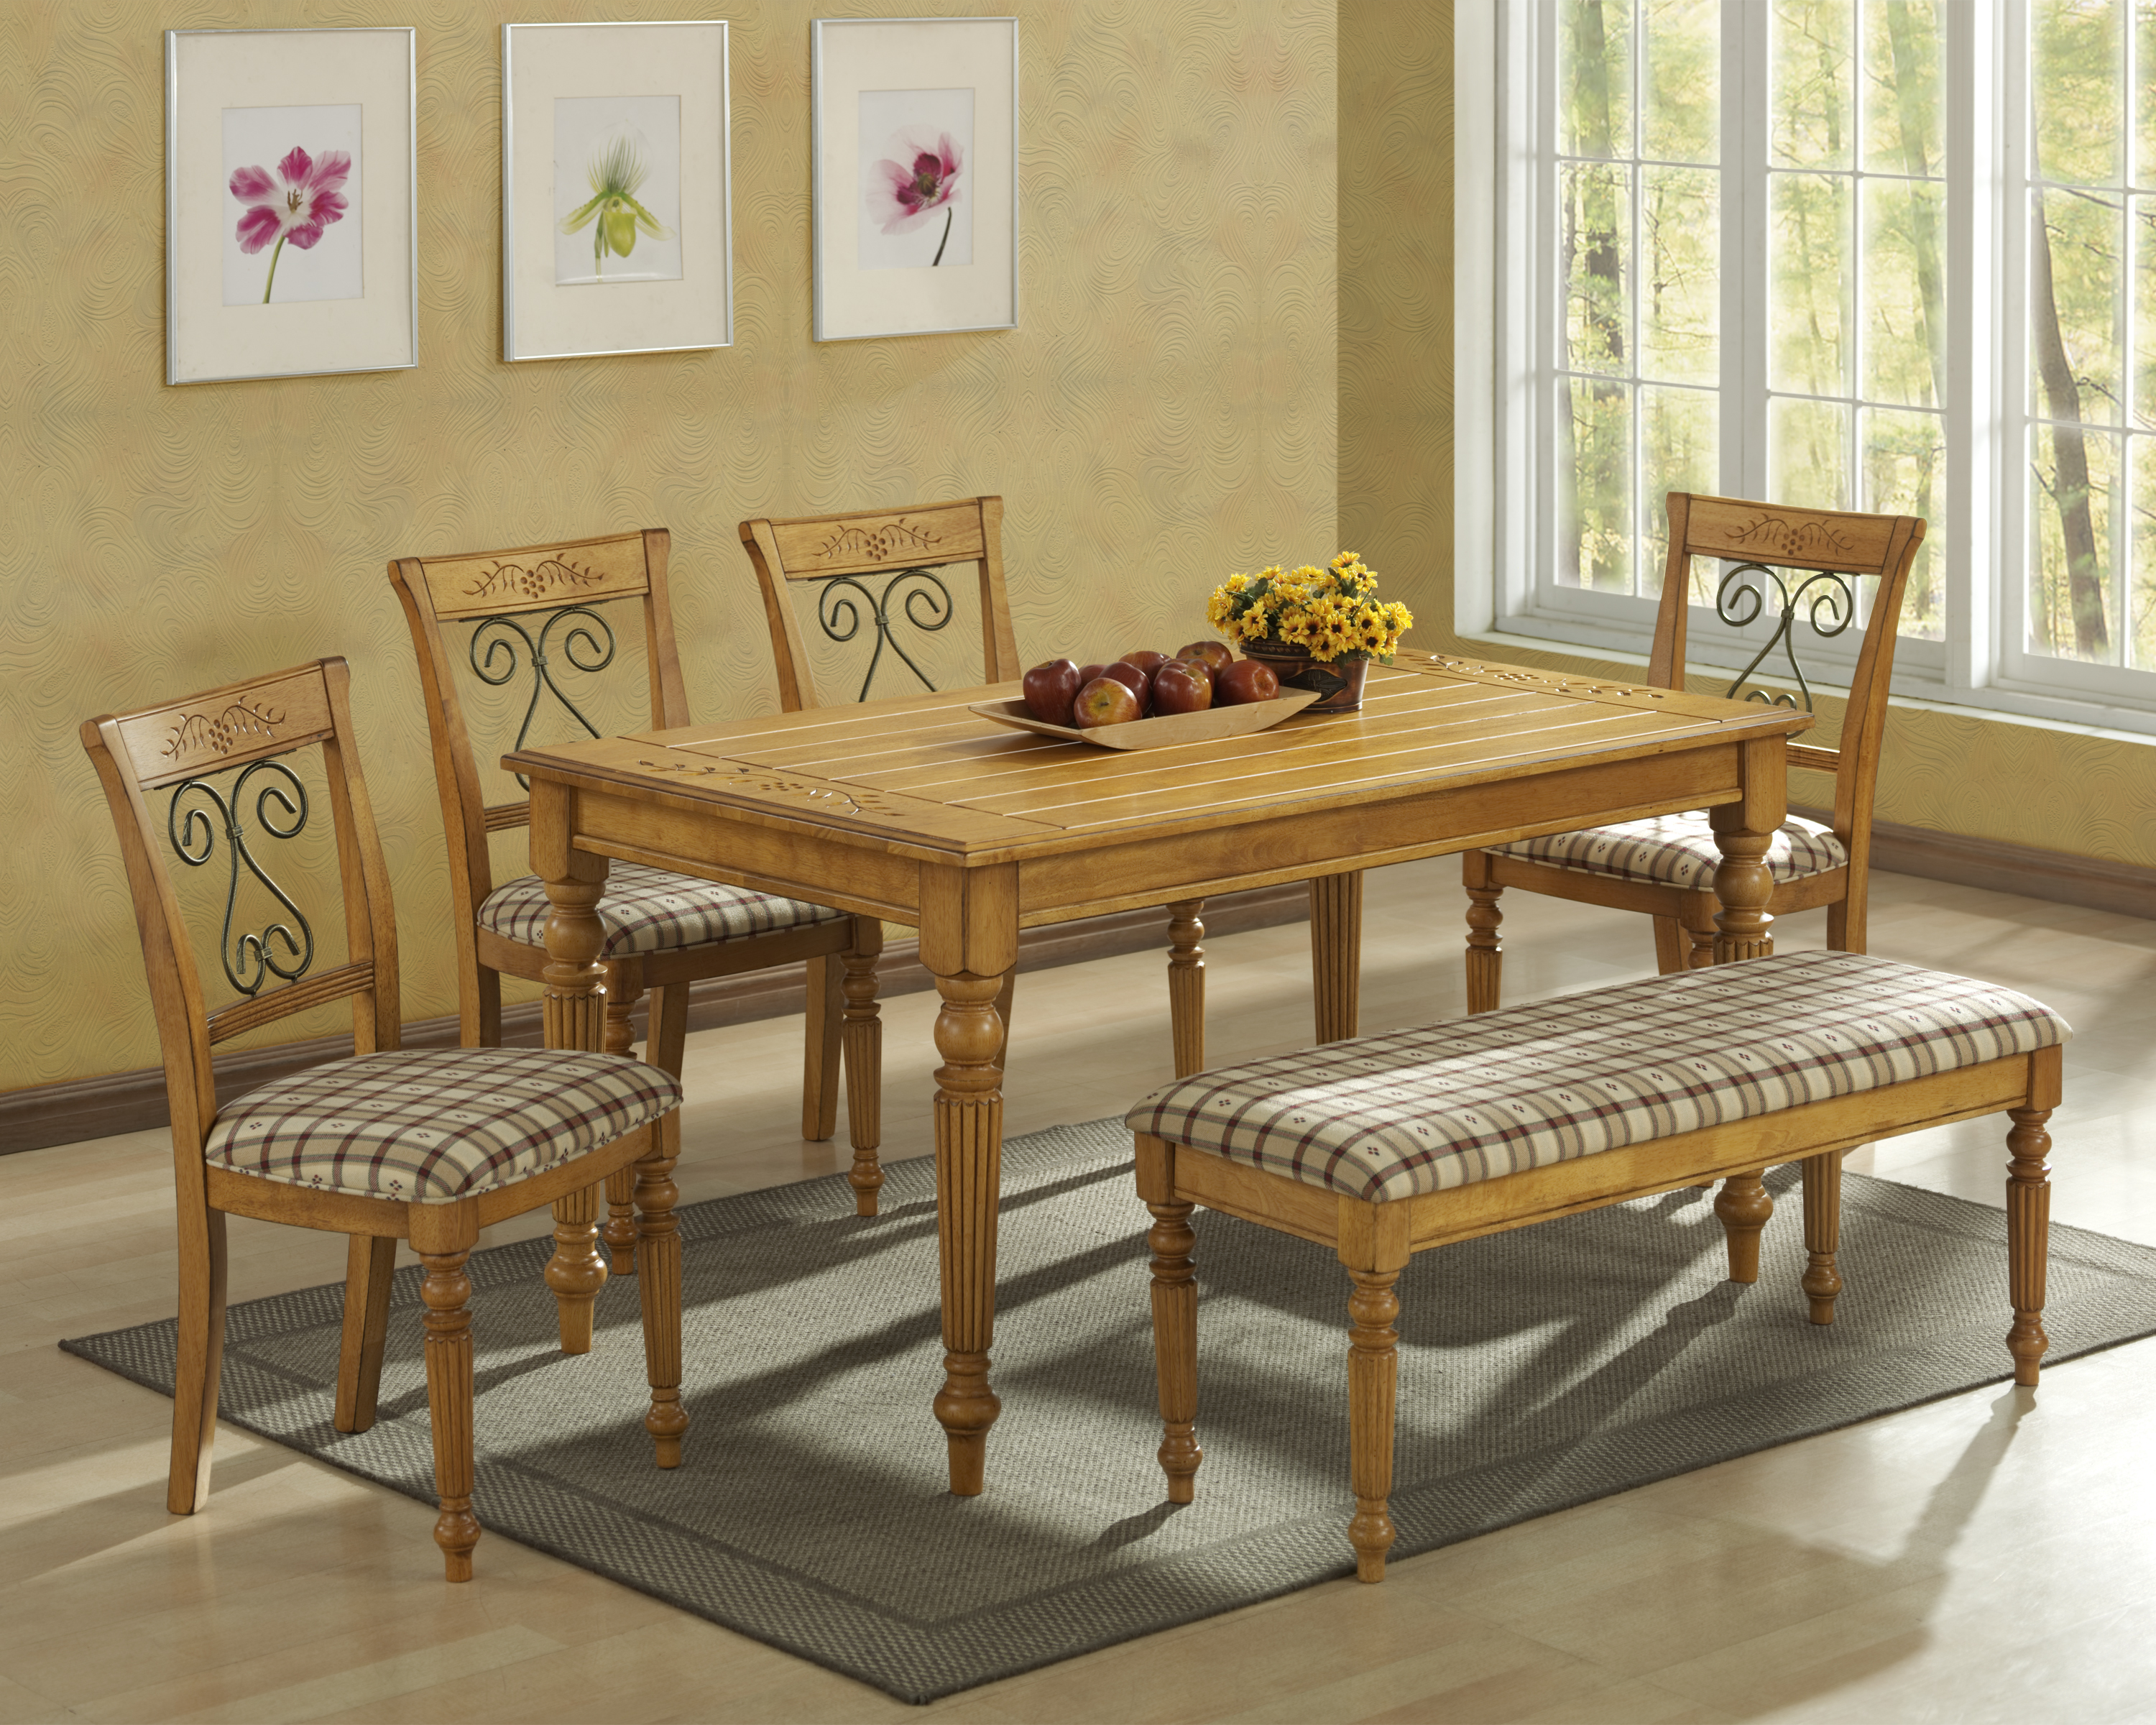 Furniture of America Bernette 5Piece Round Dining Table